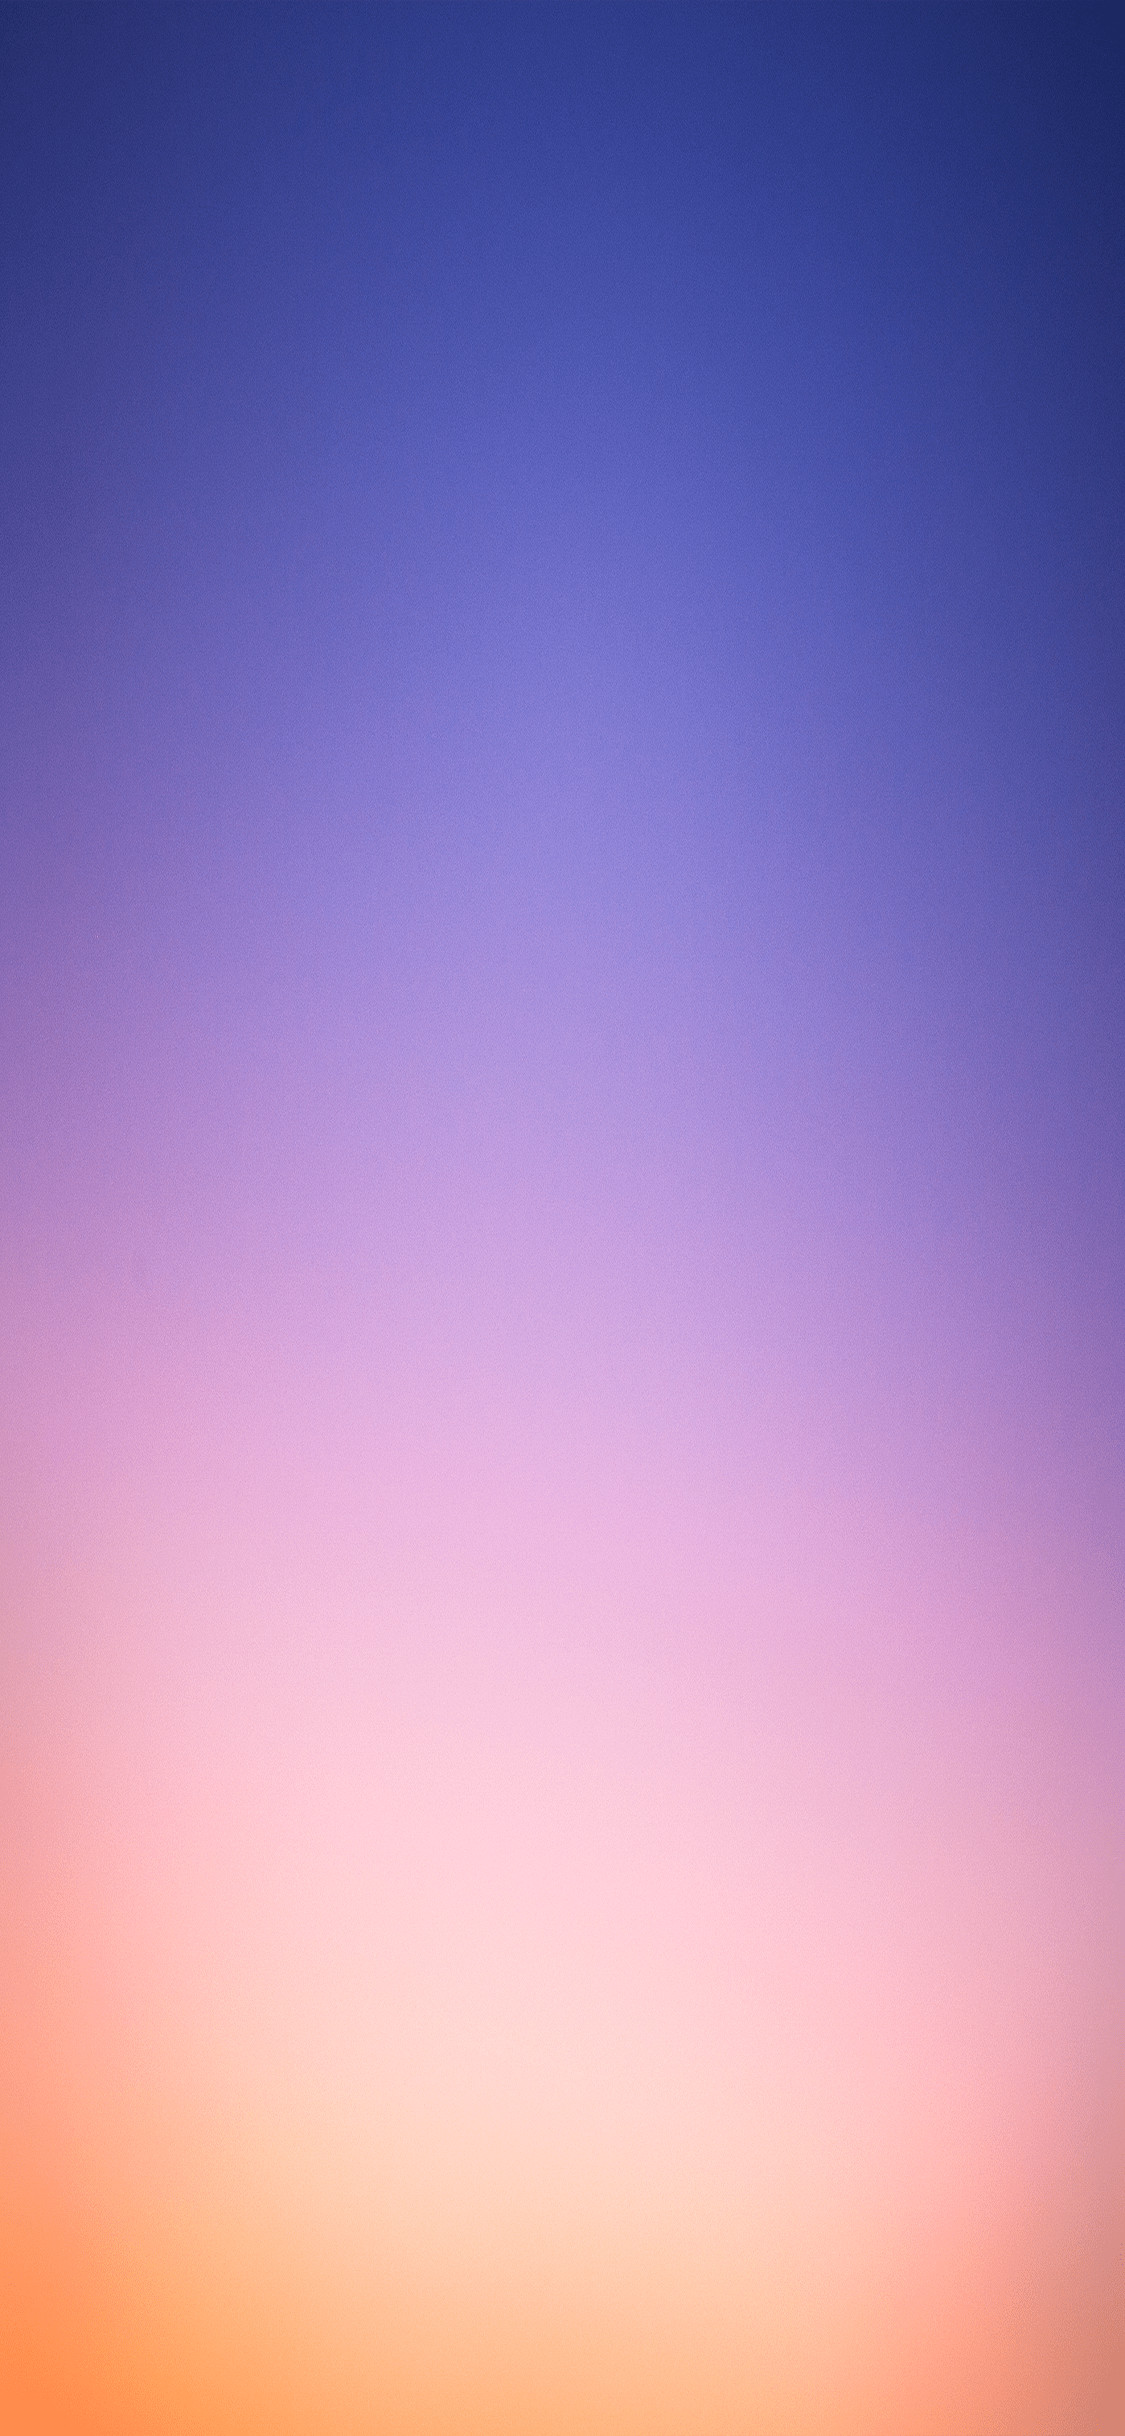 1125x2436 Download: iPhone